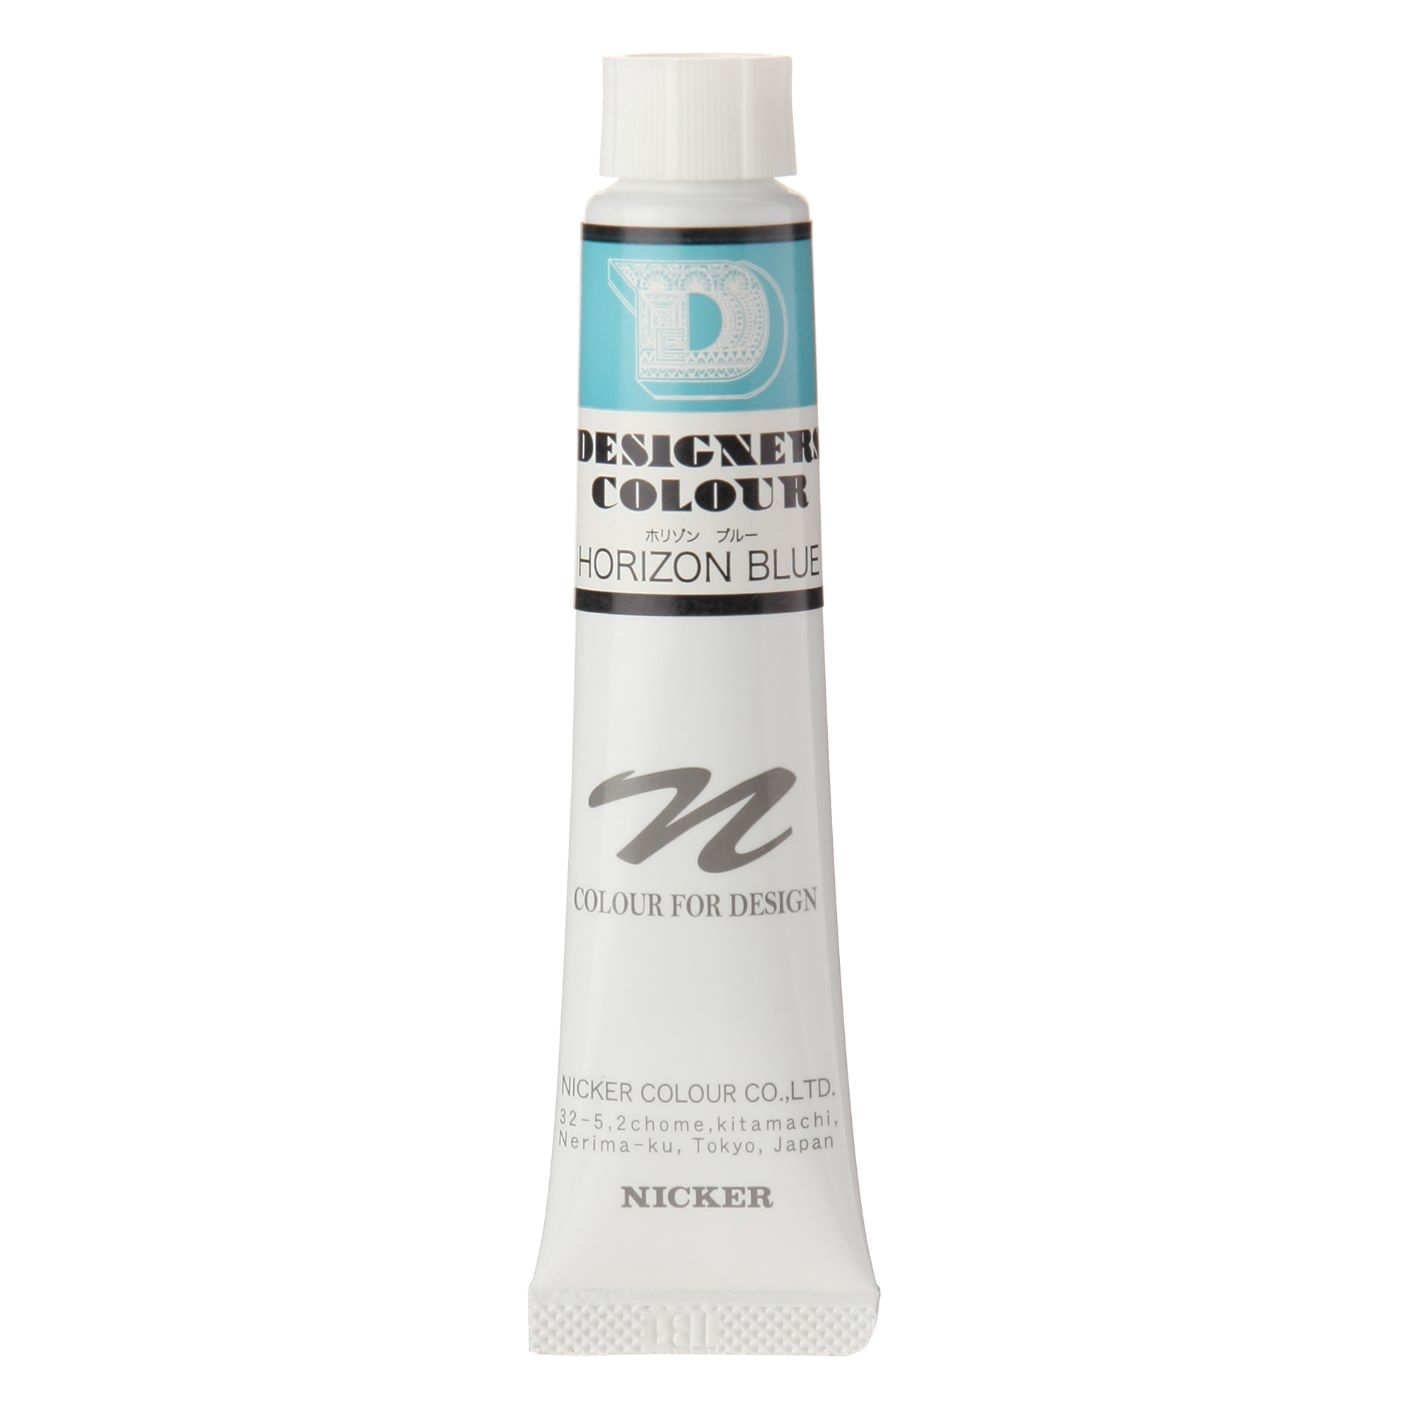 DESIGNERS COLOUR 20ml 580 HORIZON BLUE